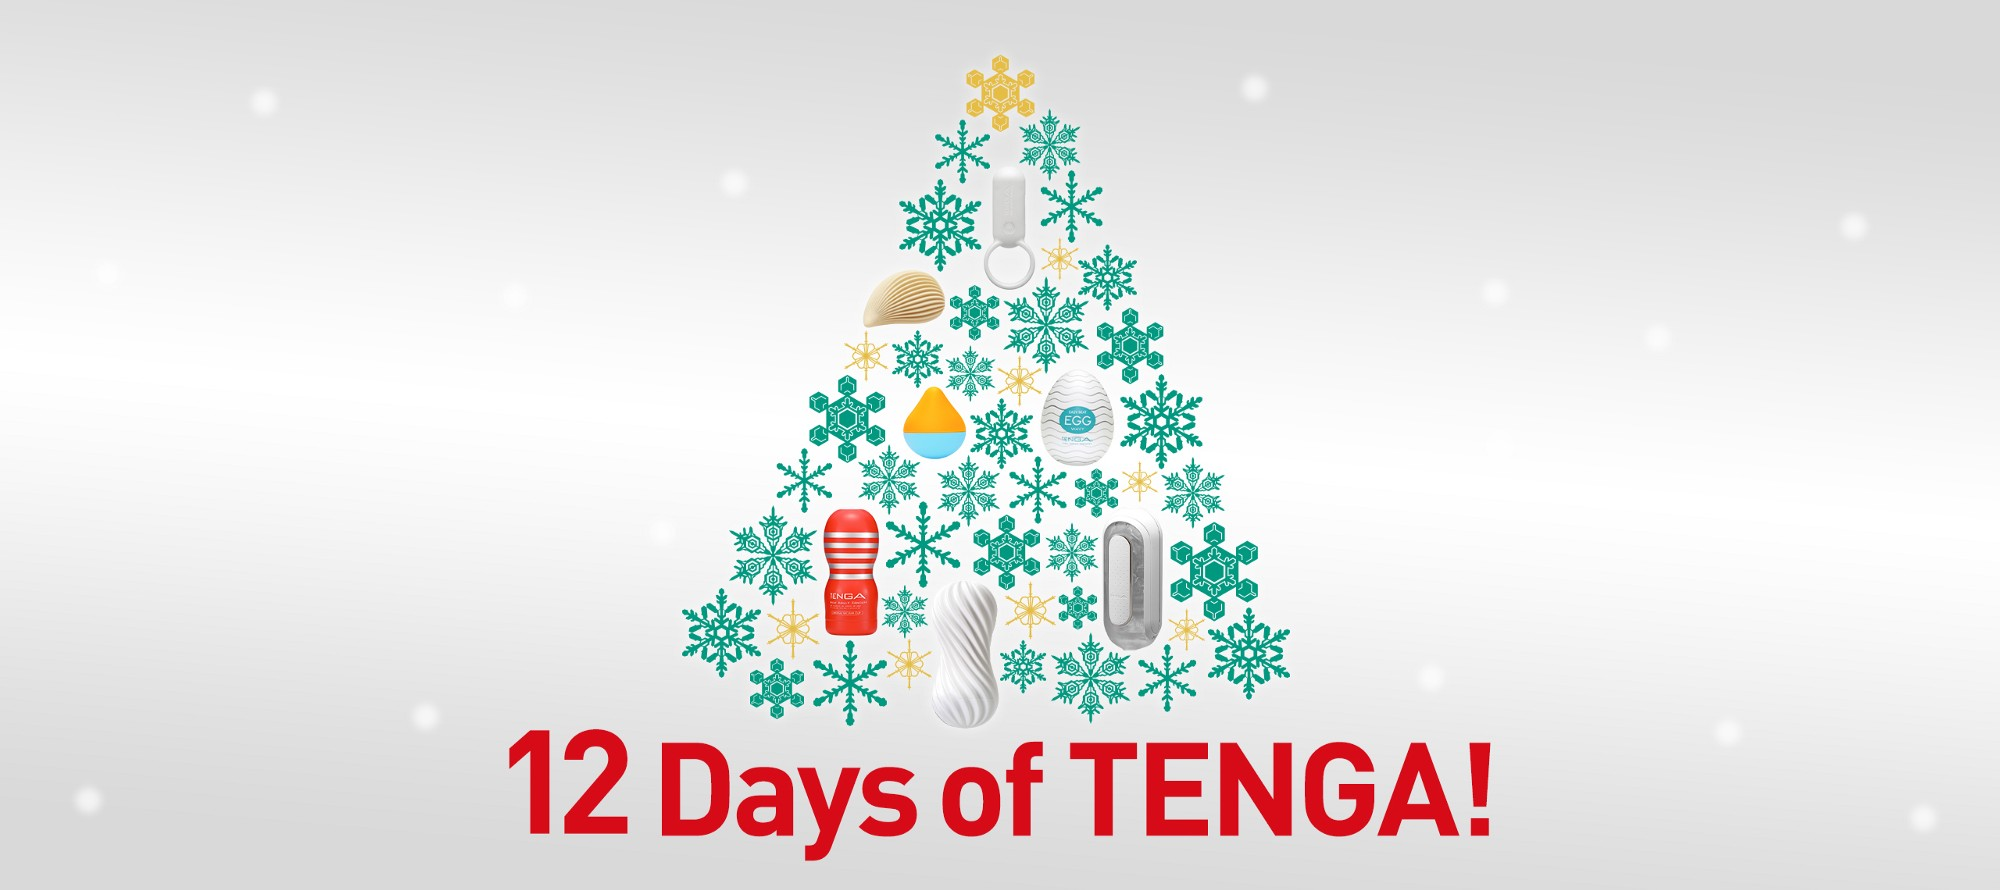 12 Days of TENGA: It\'s a global holiday giveaway extravaganza!